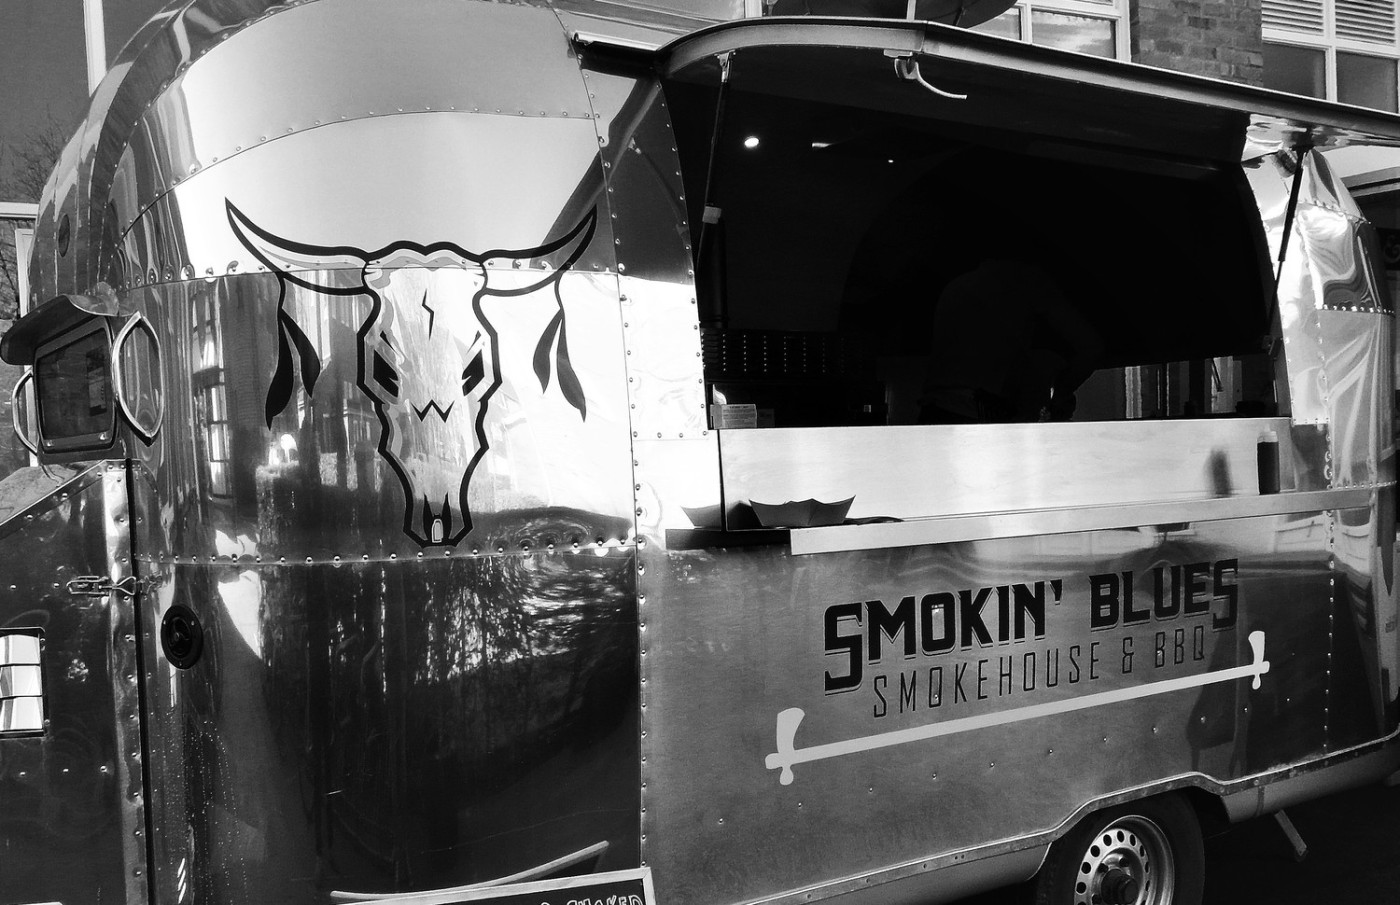 Smokin Blues York street food